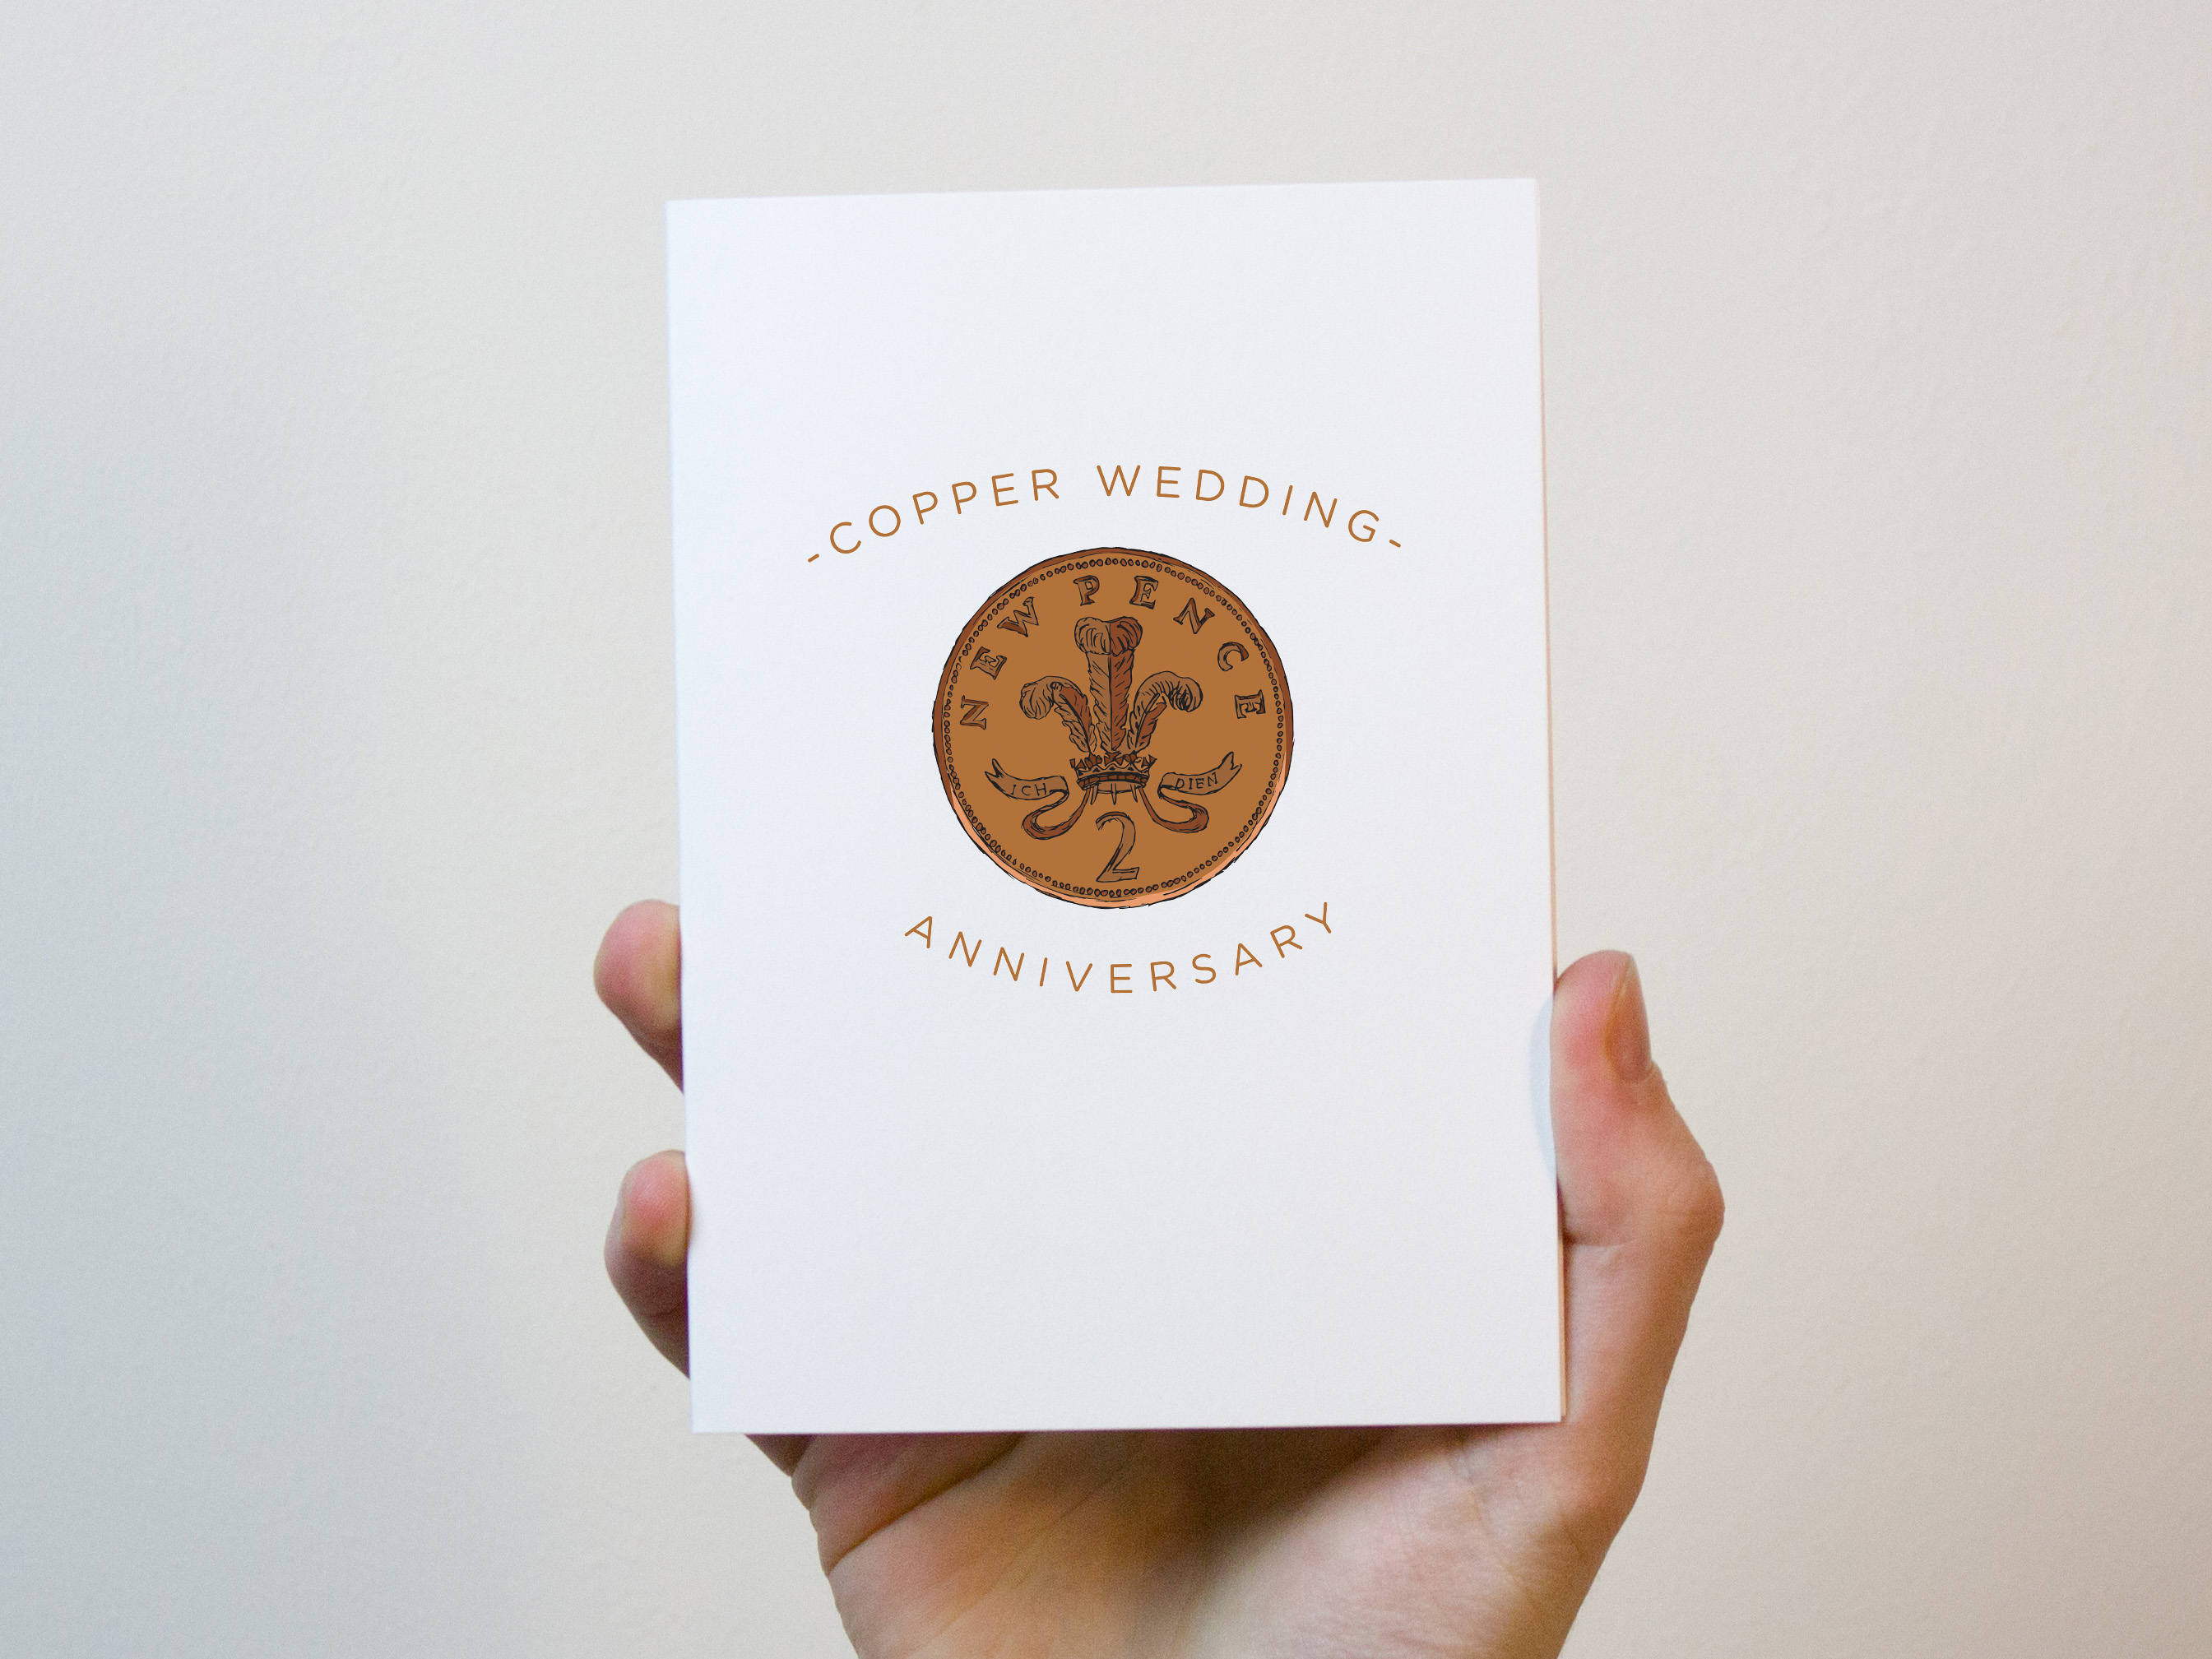 7th Wedding Anniversary.Copper Wedding Anniversary Card 7 Year Wedding Anniversary Card 7th Wedding Anniversary Card